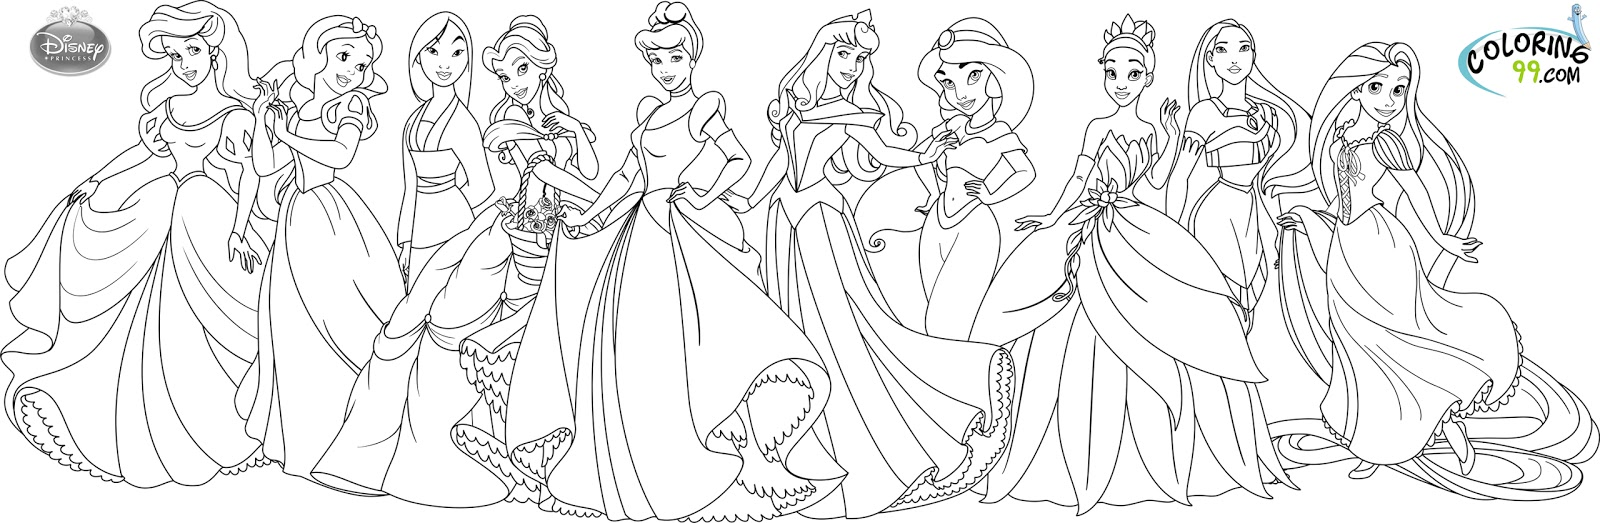 disney princess characters coloring pages - photo#34